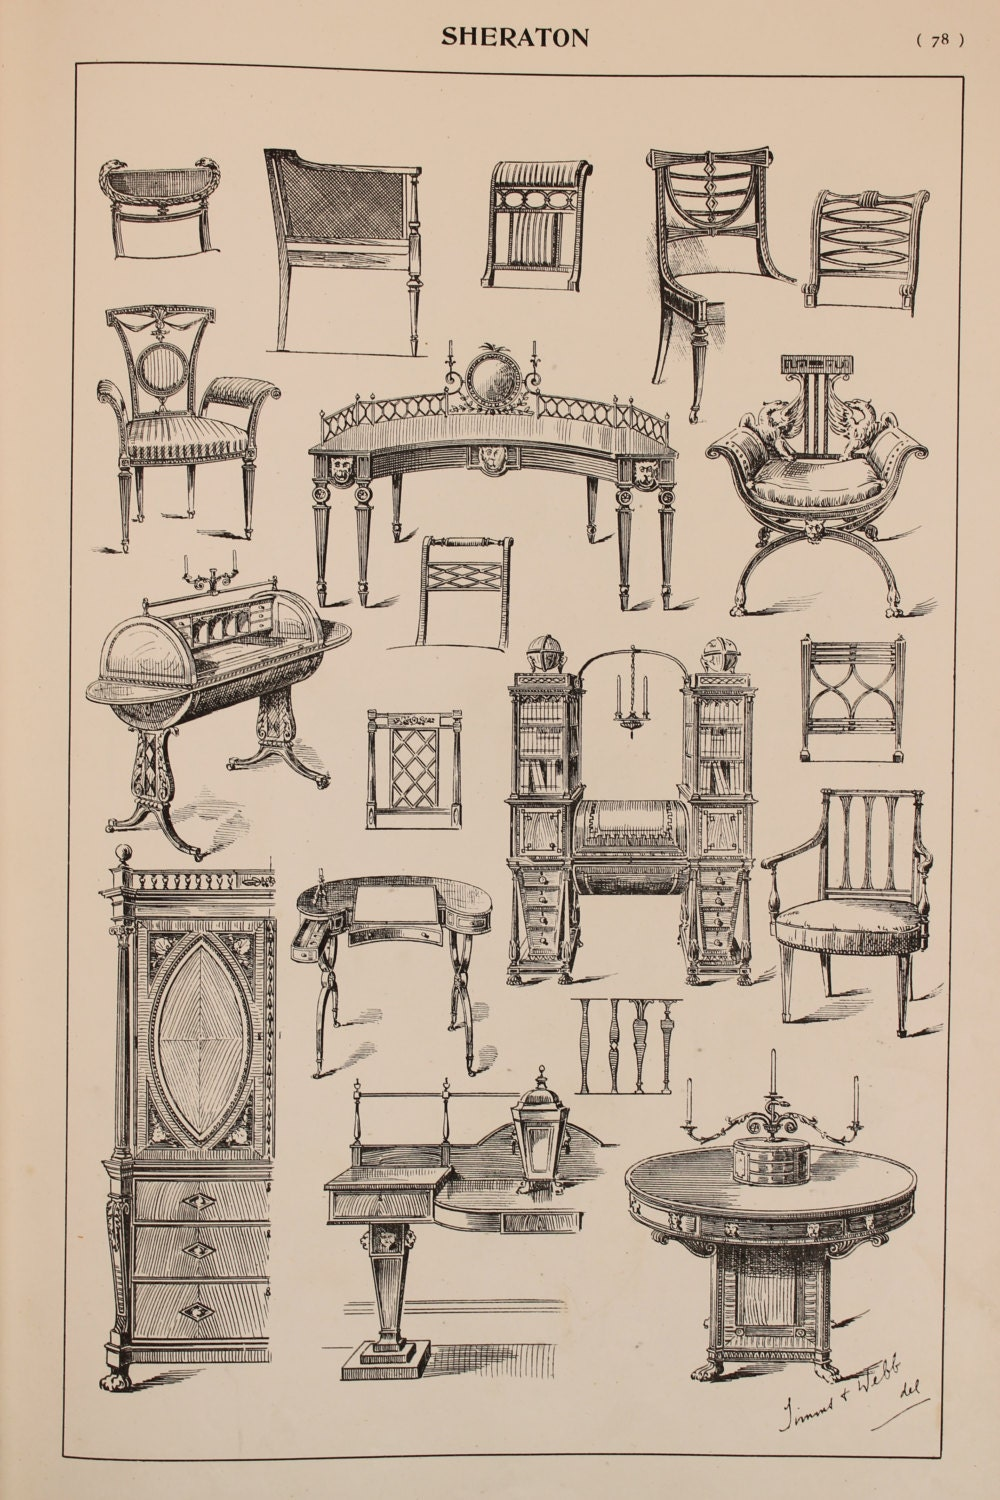 English sheraton furniture designs large antique by for English chair design